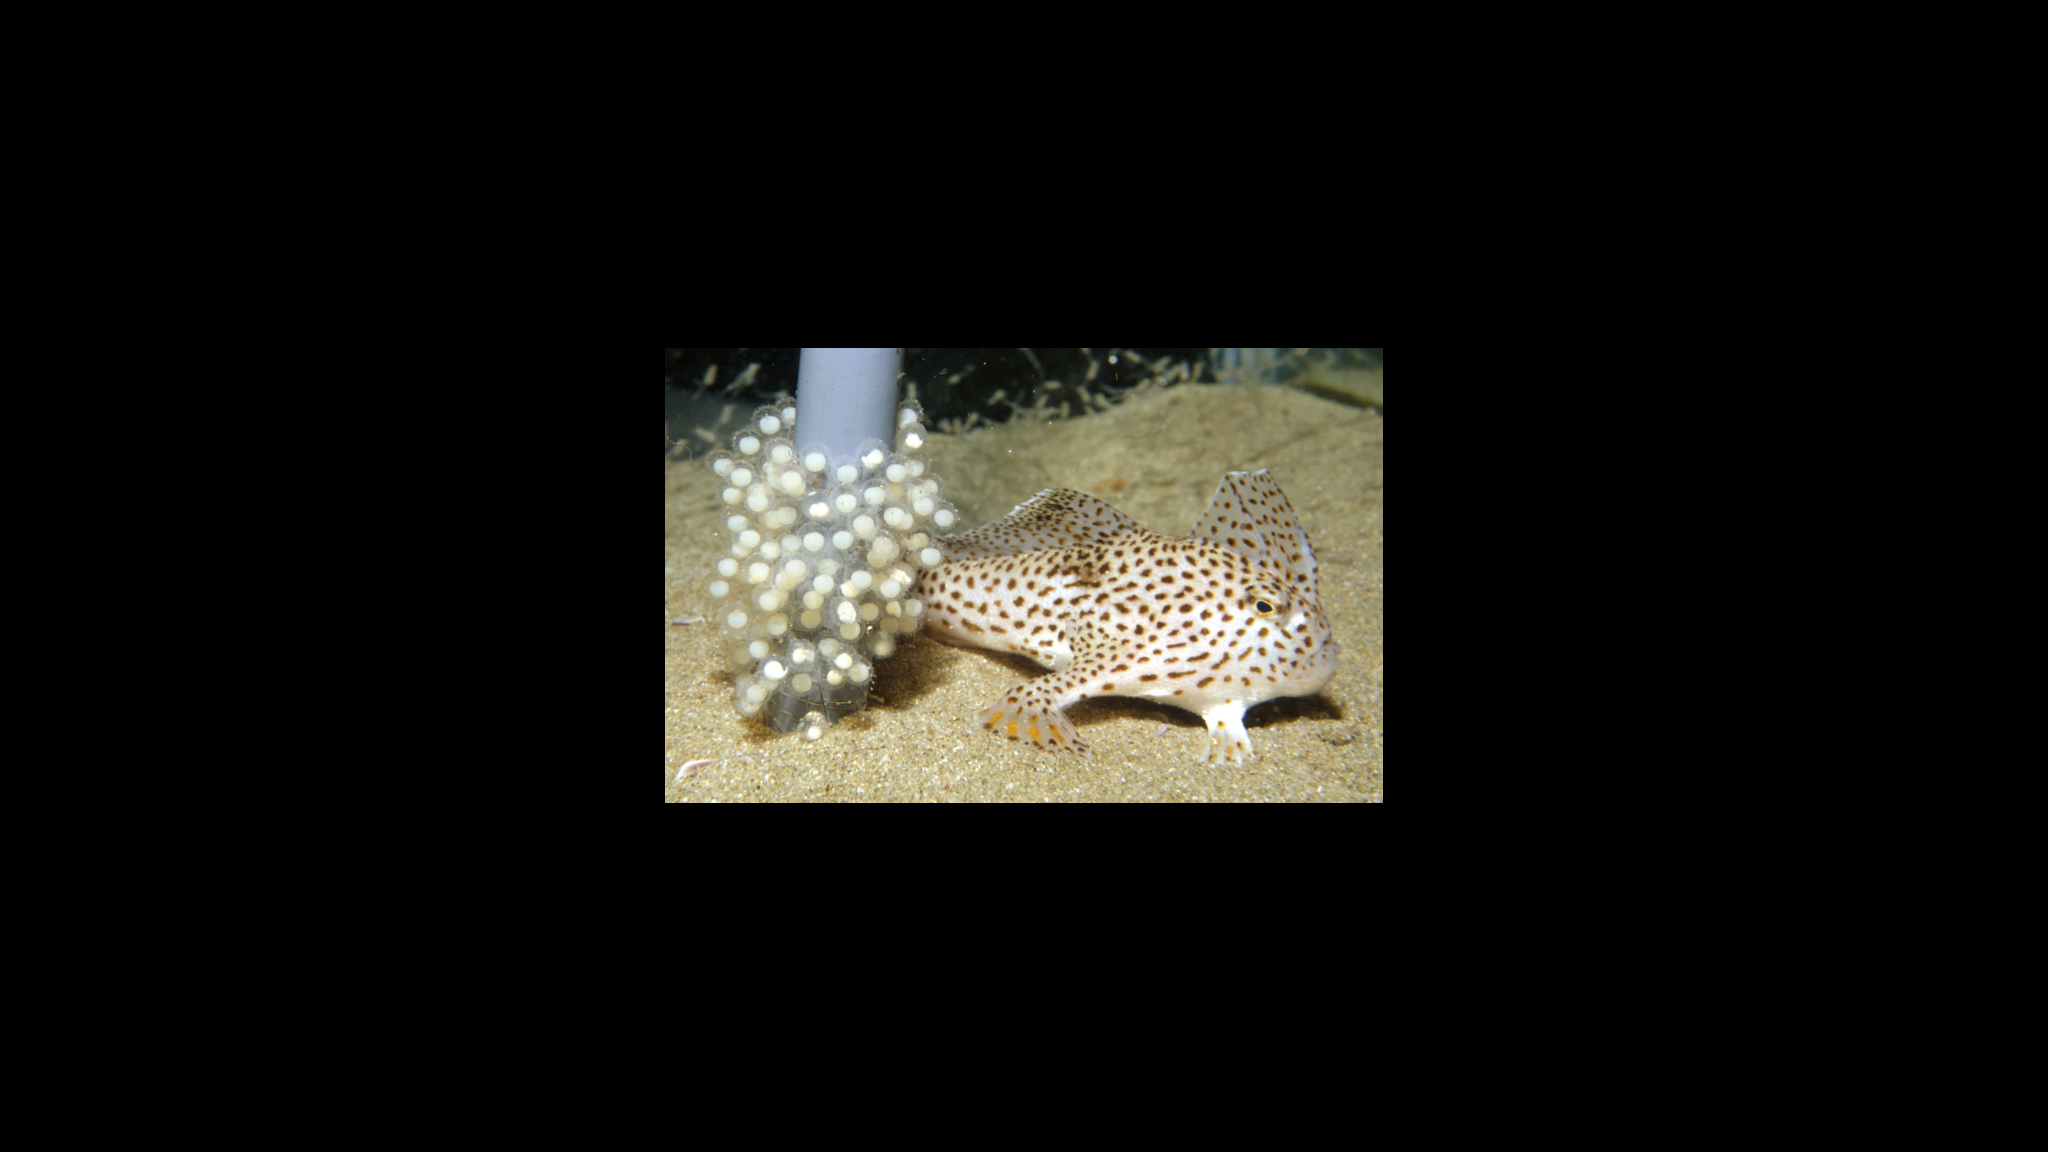 Roaring 40s Kayaking blog - Handfish - A female Spotted Handfish with eggs